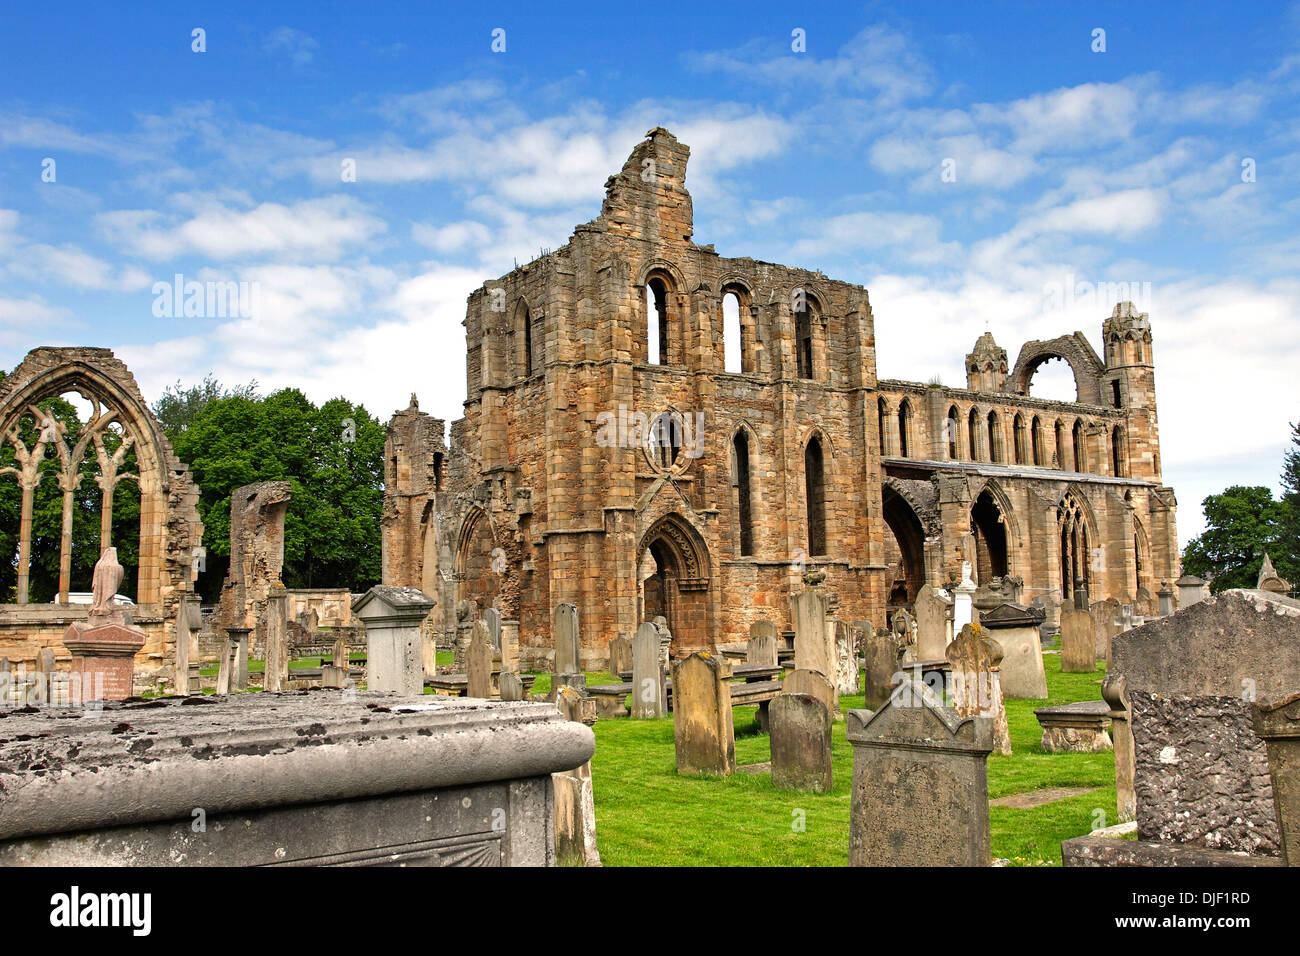 The ruined facade and ancient gravestones of the derelict medieval Cathedral at Elgin in Morayshire, Scotland. Stock Photo